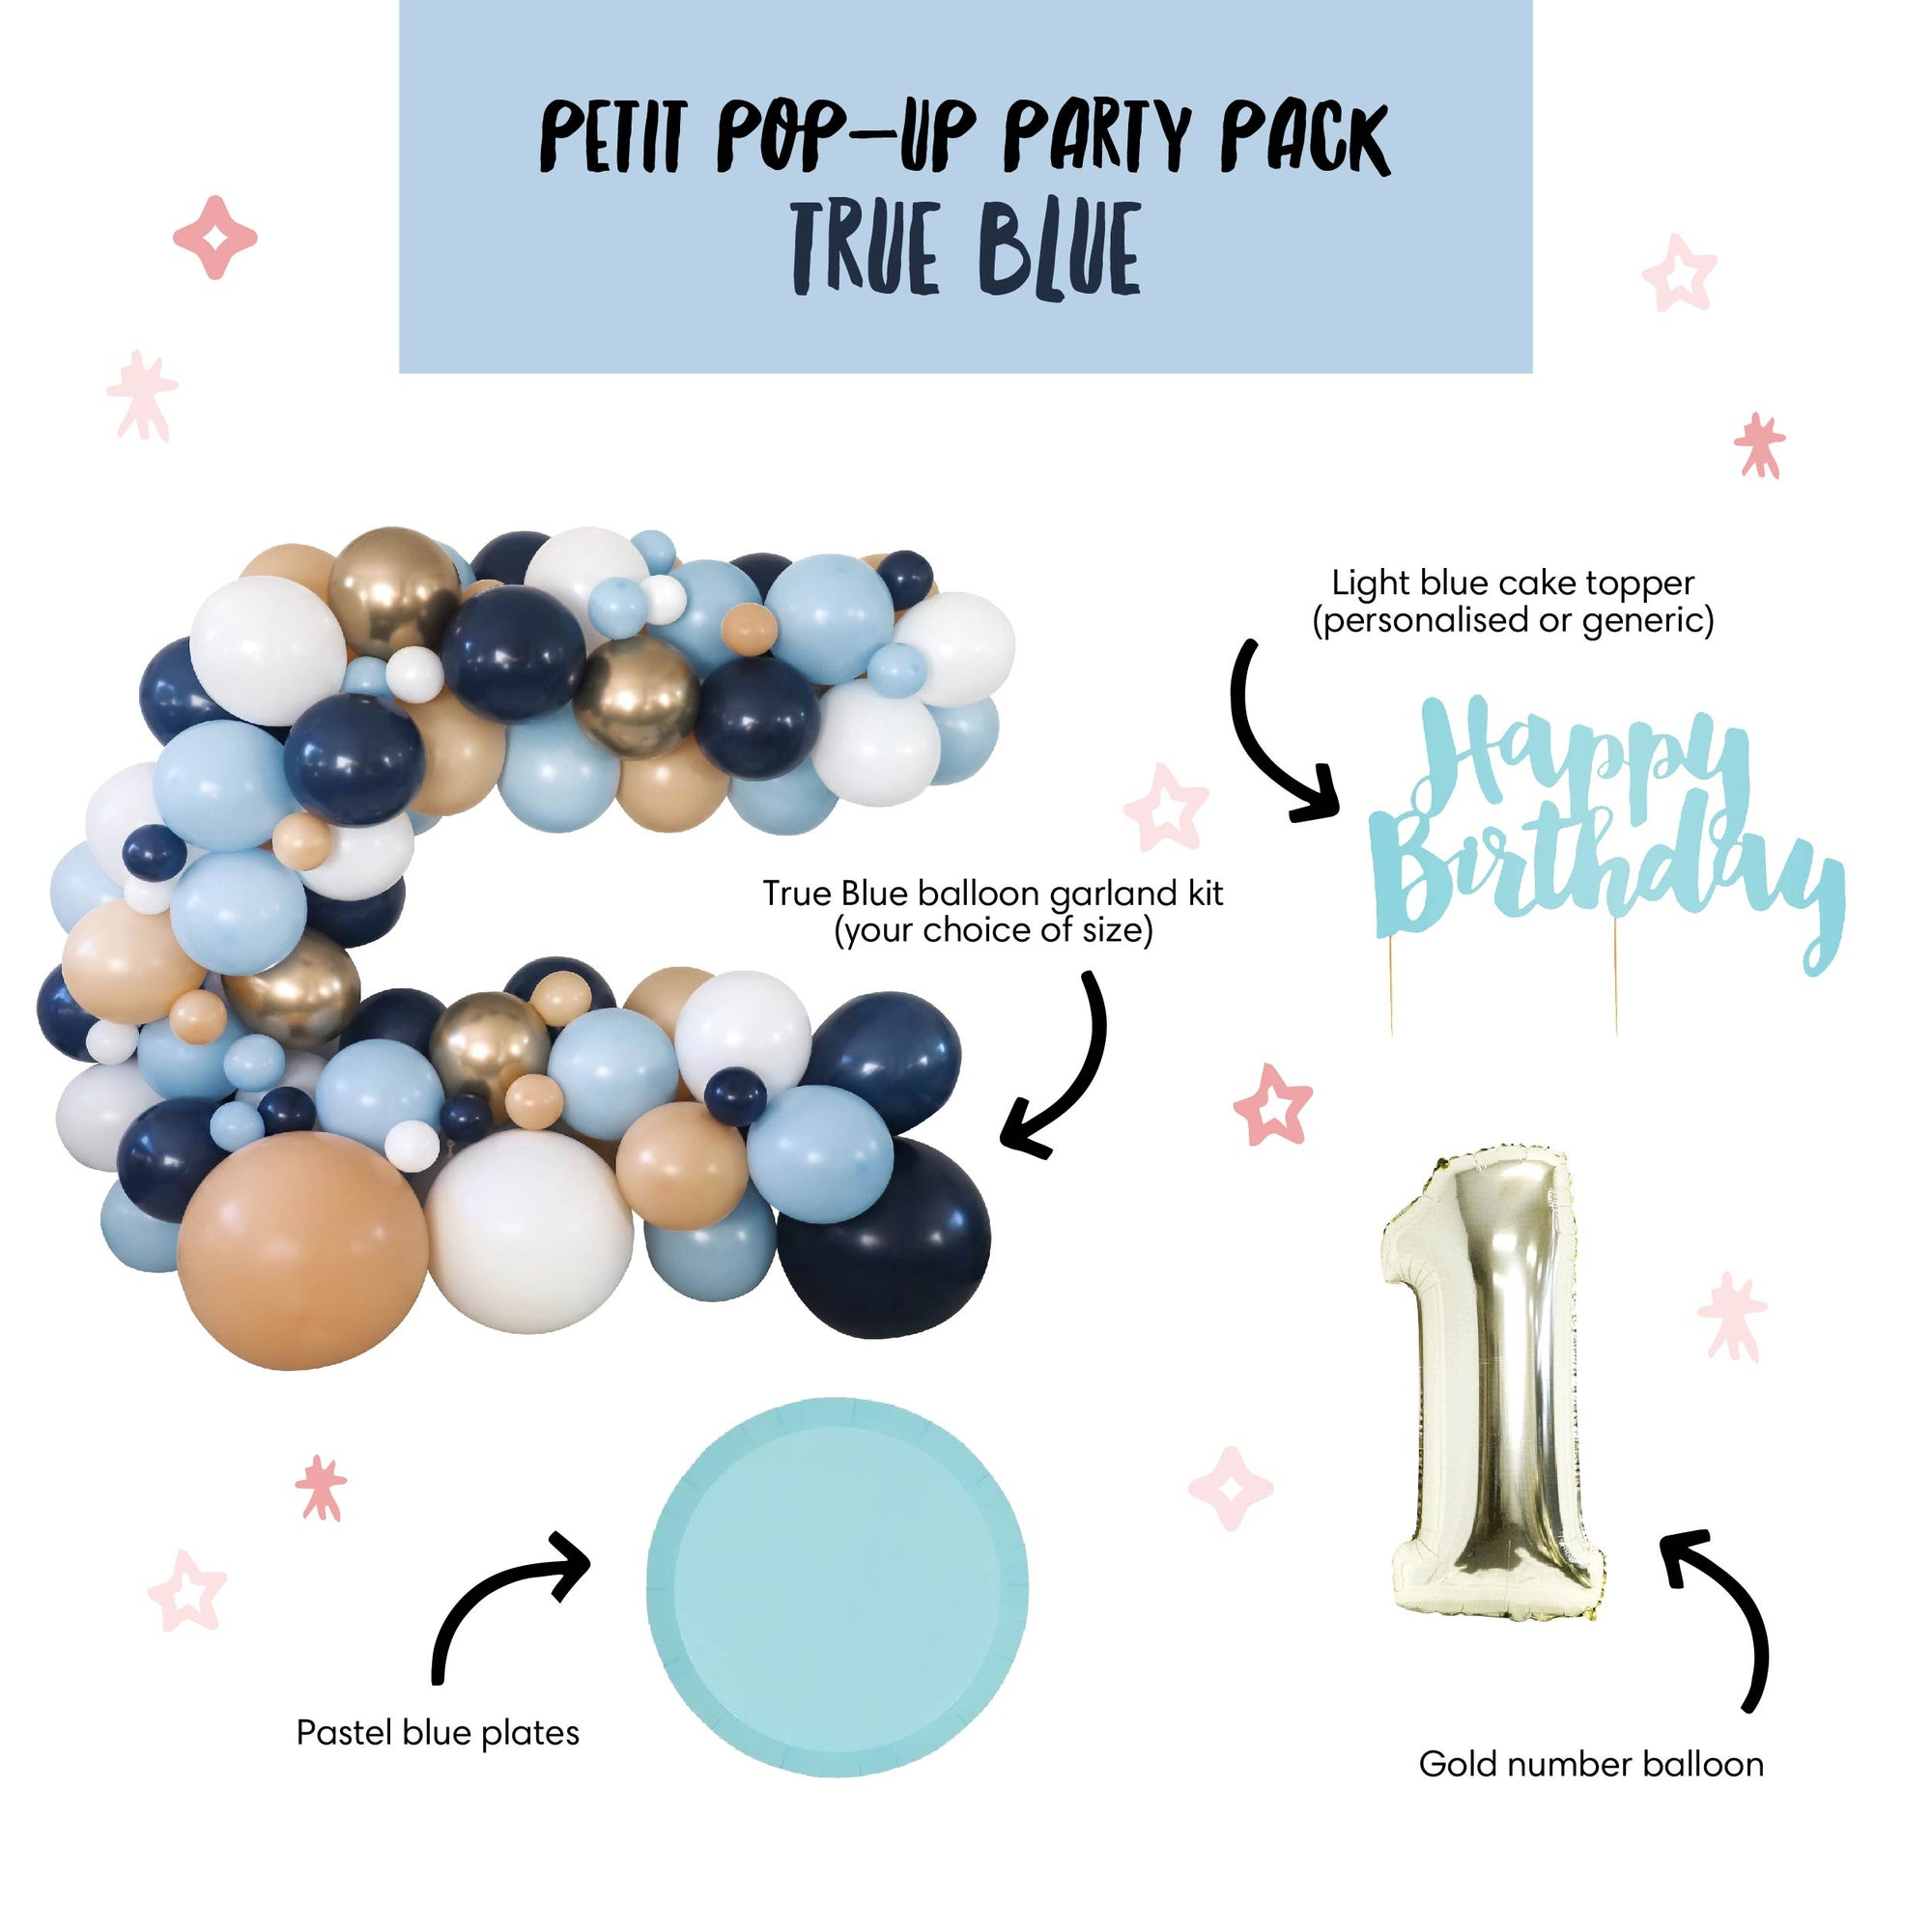 Petit Pop-Up Party Pack - True Blue